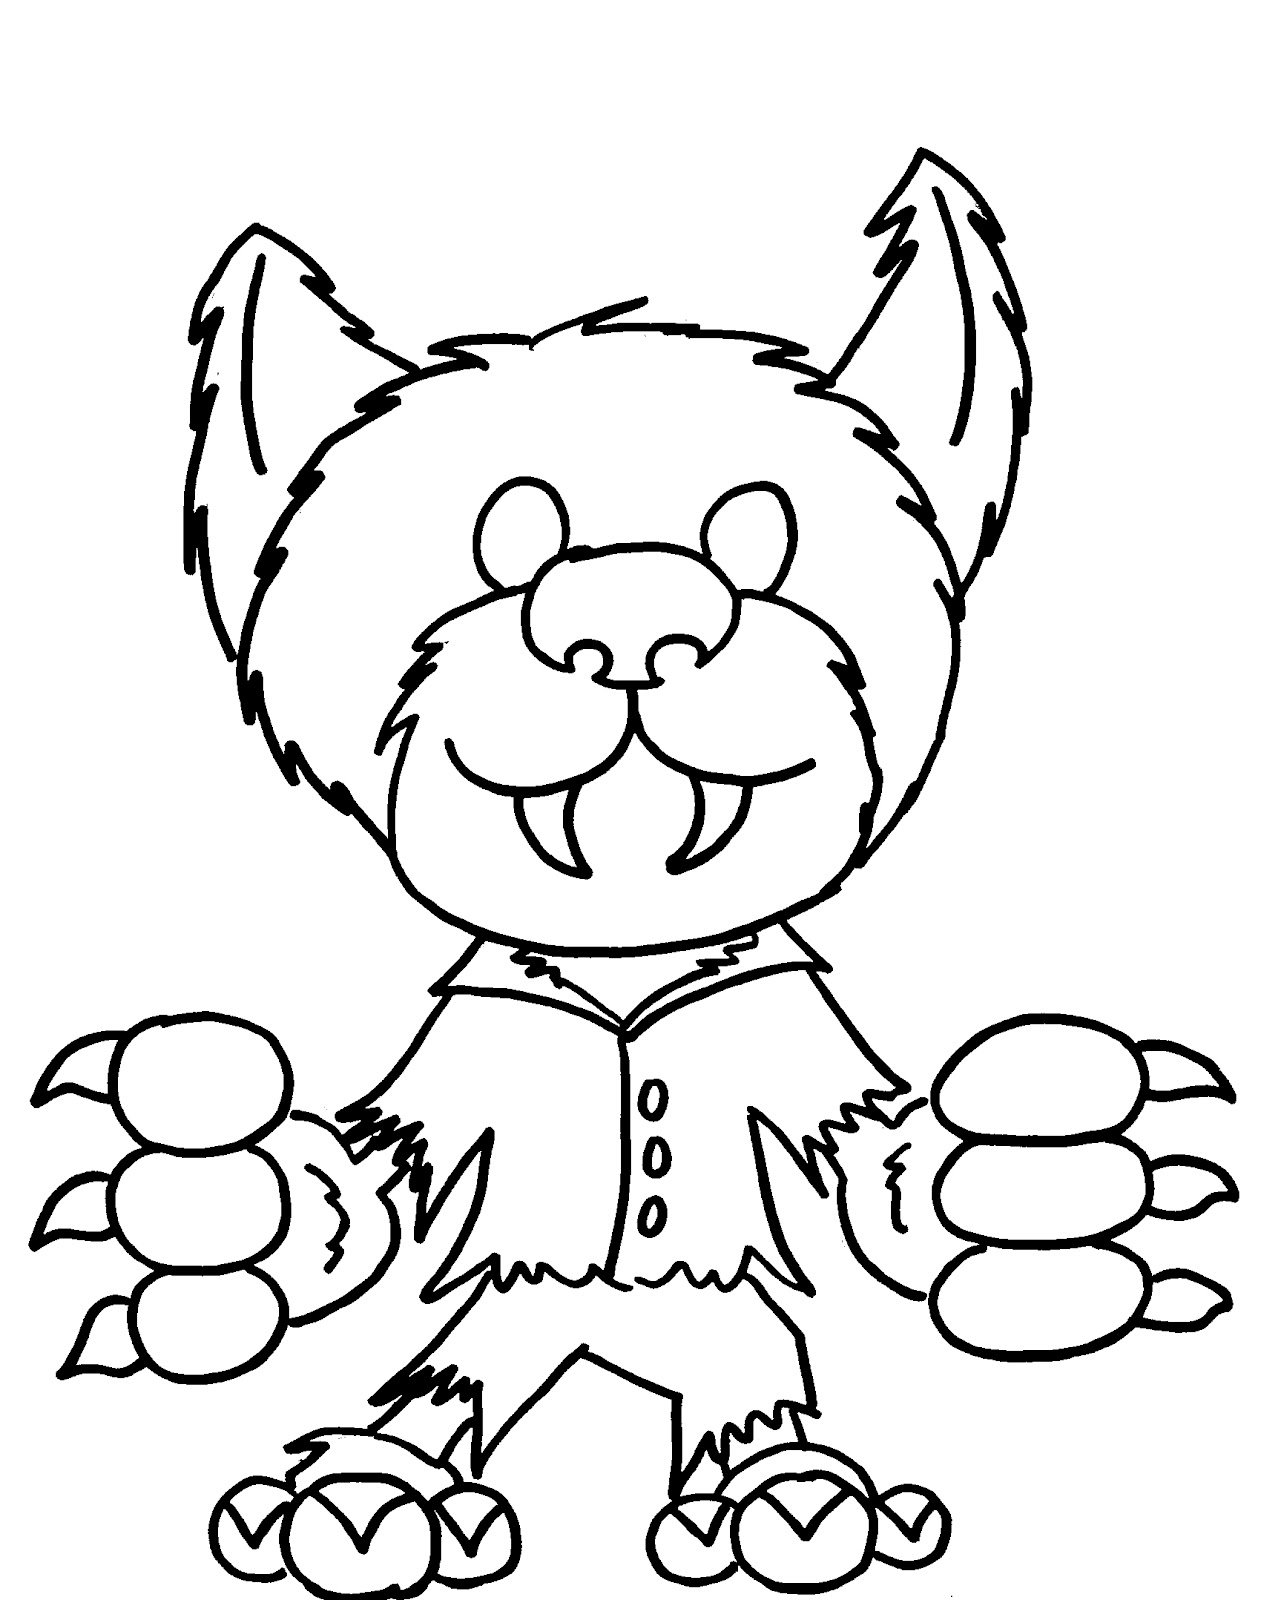 haloween coloring pages halloween printable coloring pages minnesota miranda coloring haloween pages